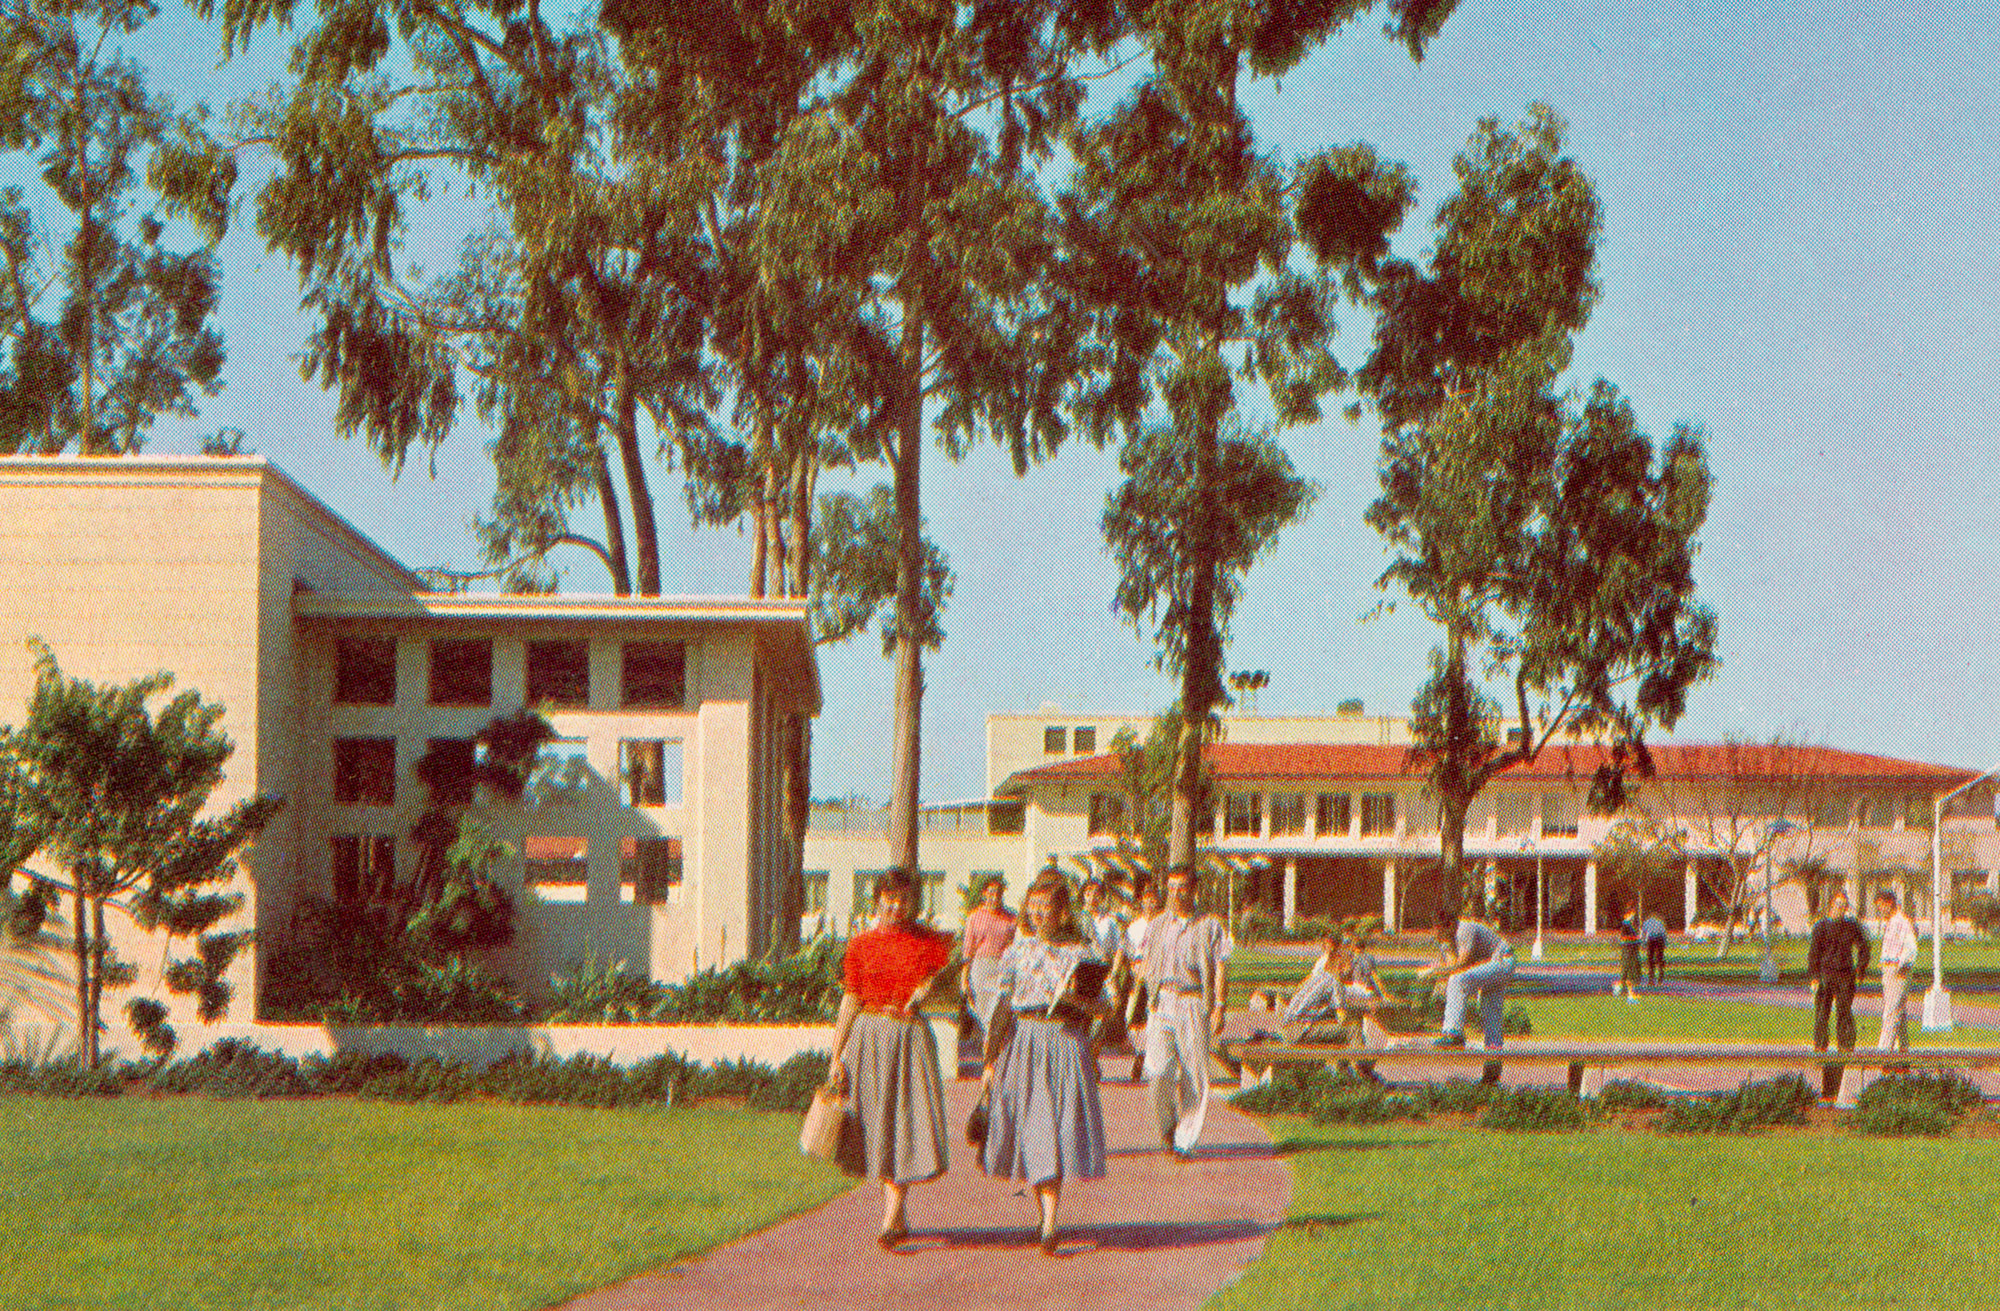 Campus by the Sea: Celebrating the 75th Anniversary of UCSB - Opening Reception title=